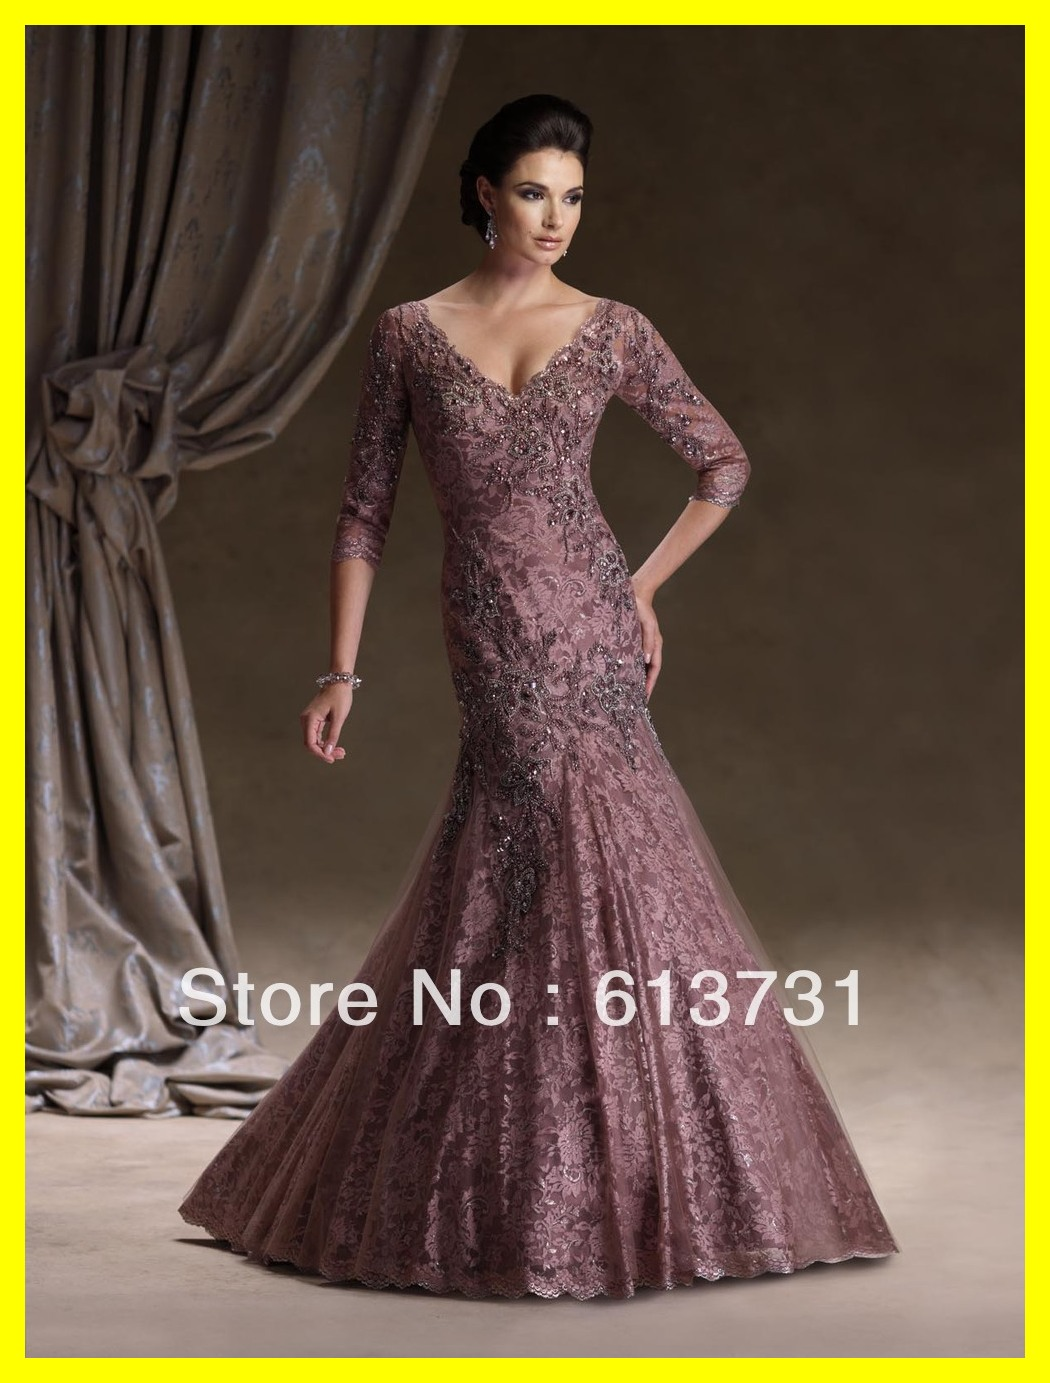 Wedding mother of the bride j kara dresses boutiques plus for Mother of the bride dresses casual wedding